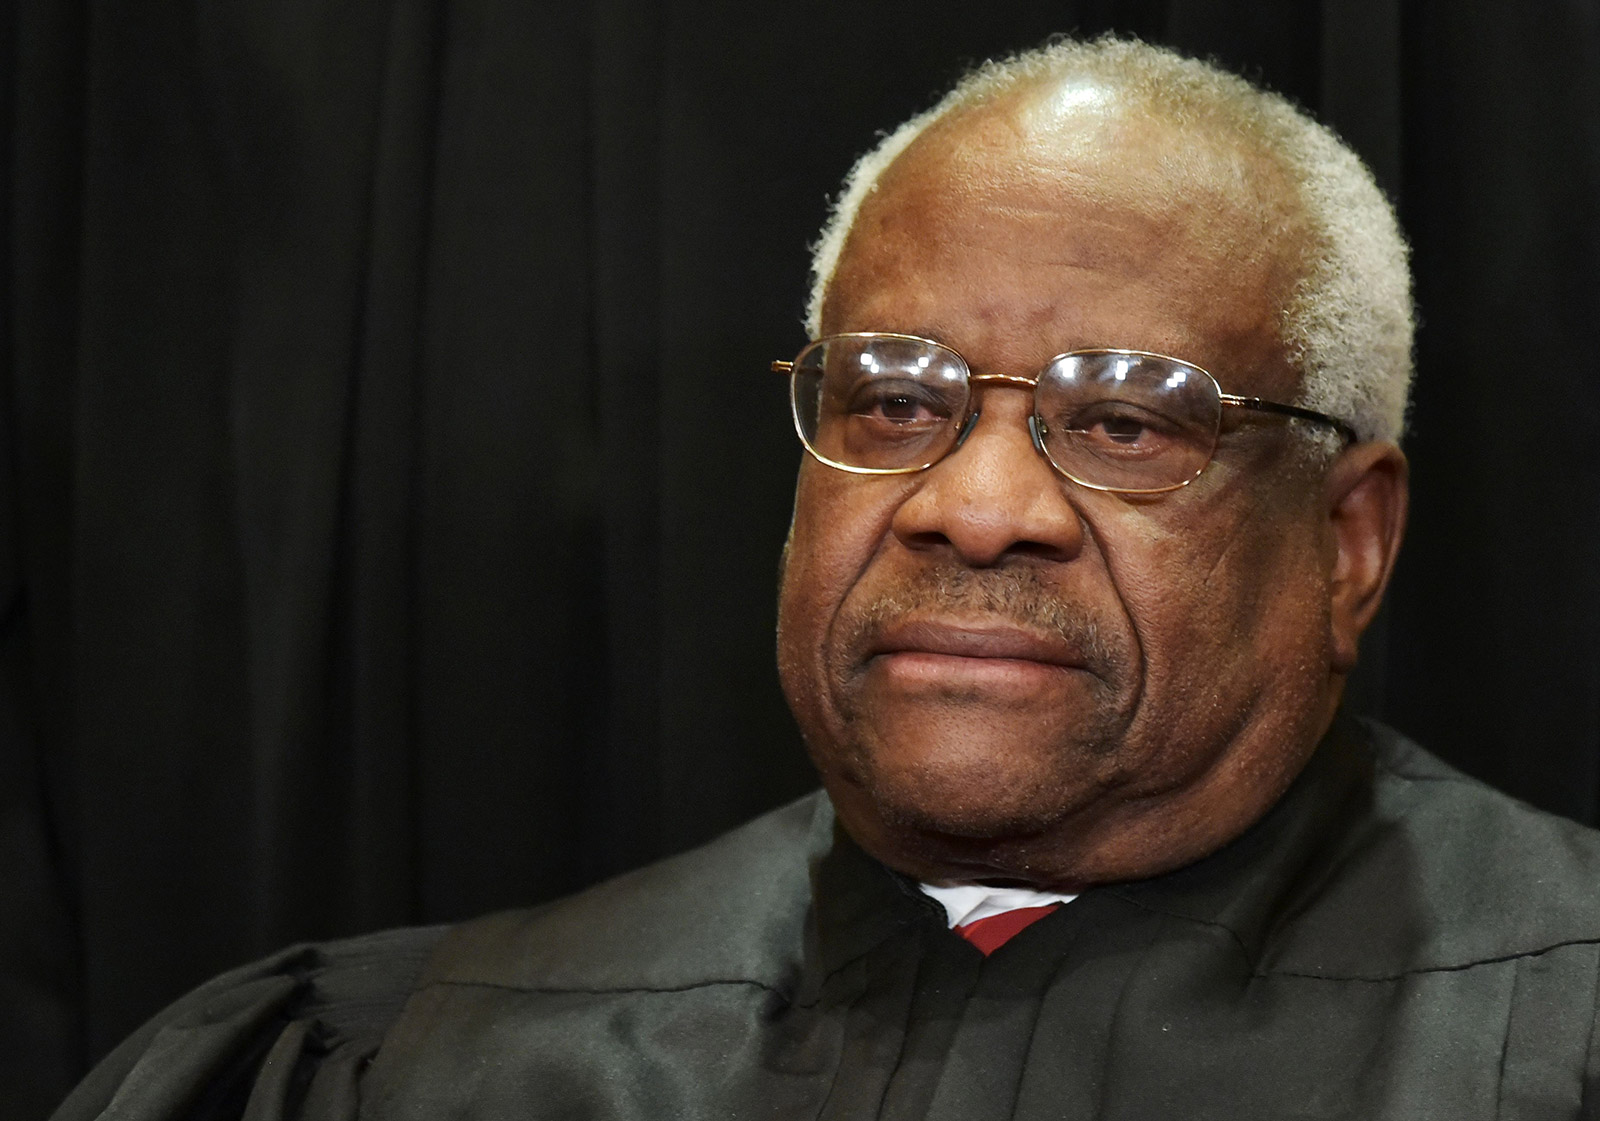 Justice Clarence Thomas poses for the official Supreme Court group photo in 2018.